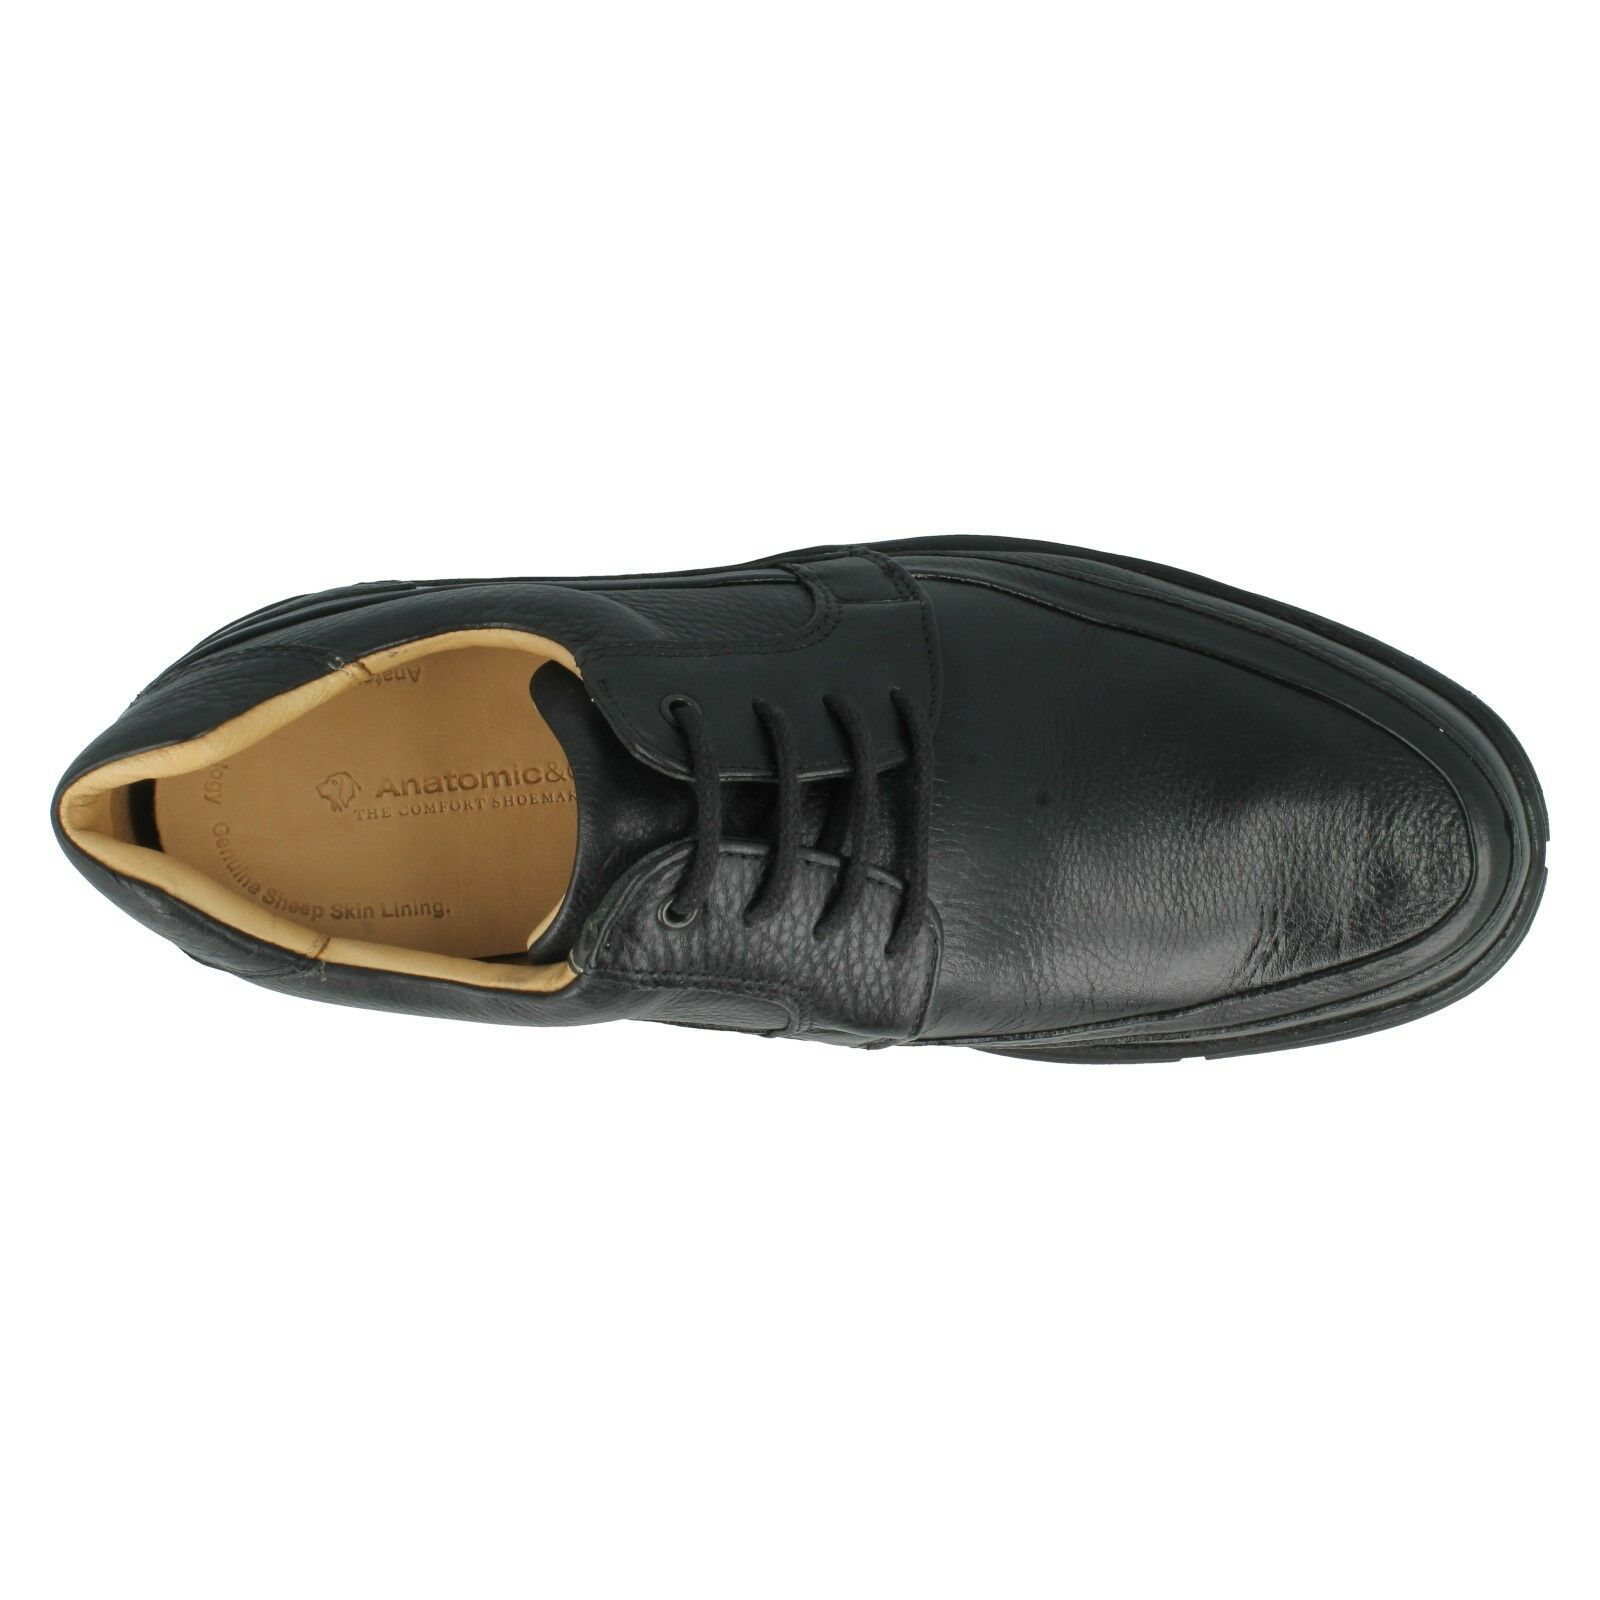 SMART Herren ANATOMIC GEL FLEXIBLE SOLE BLACK GRAIN LEATHER SMART  LACE UP Schuhe COLINAS 04f38a